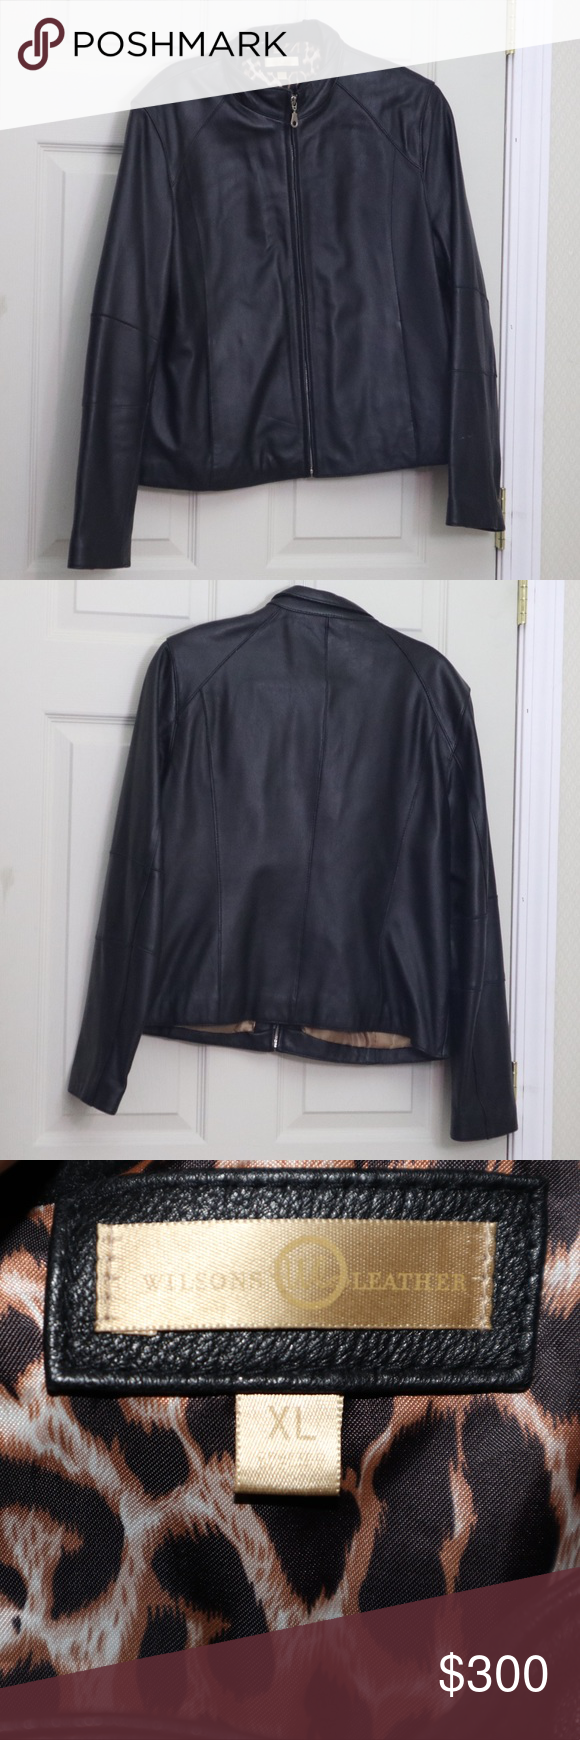 Wilsons Leather Size XL Wilsons Leather Size Chart Size